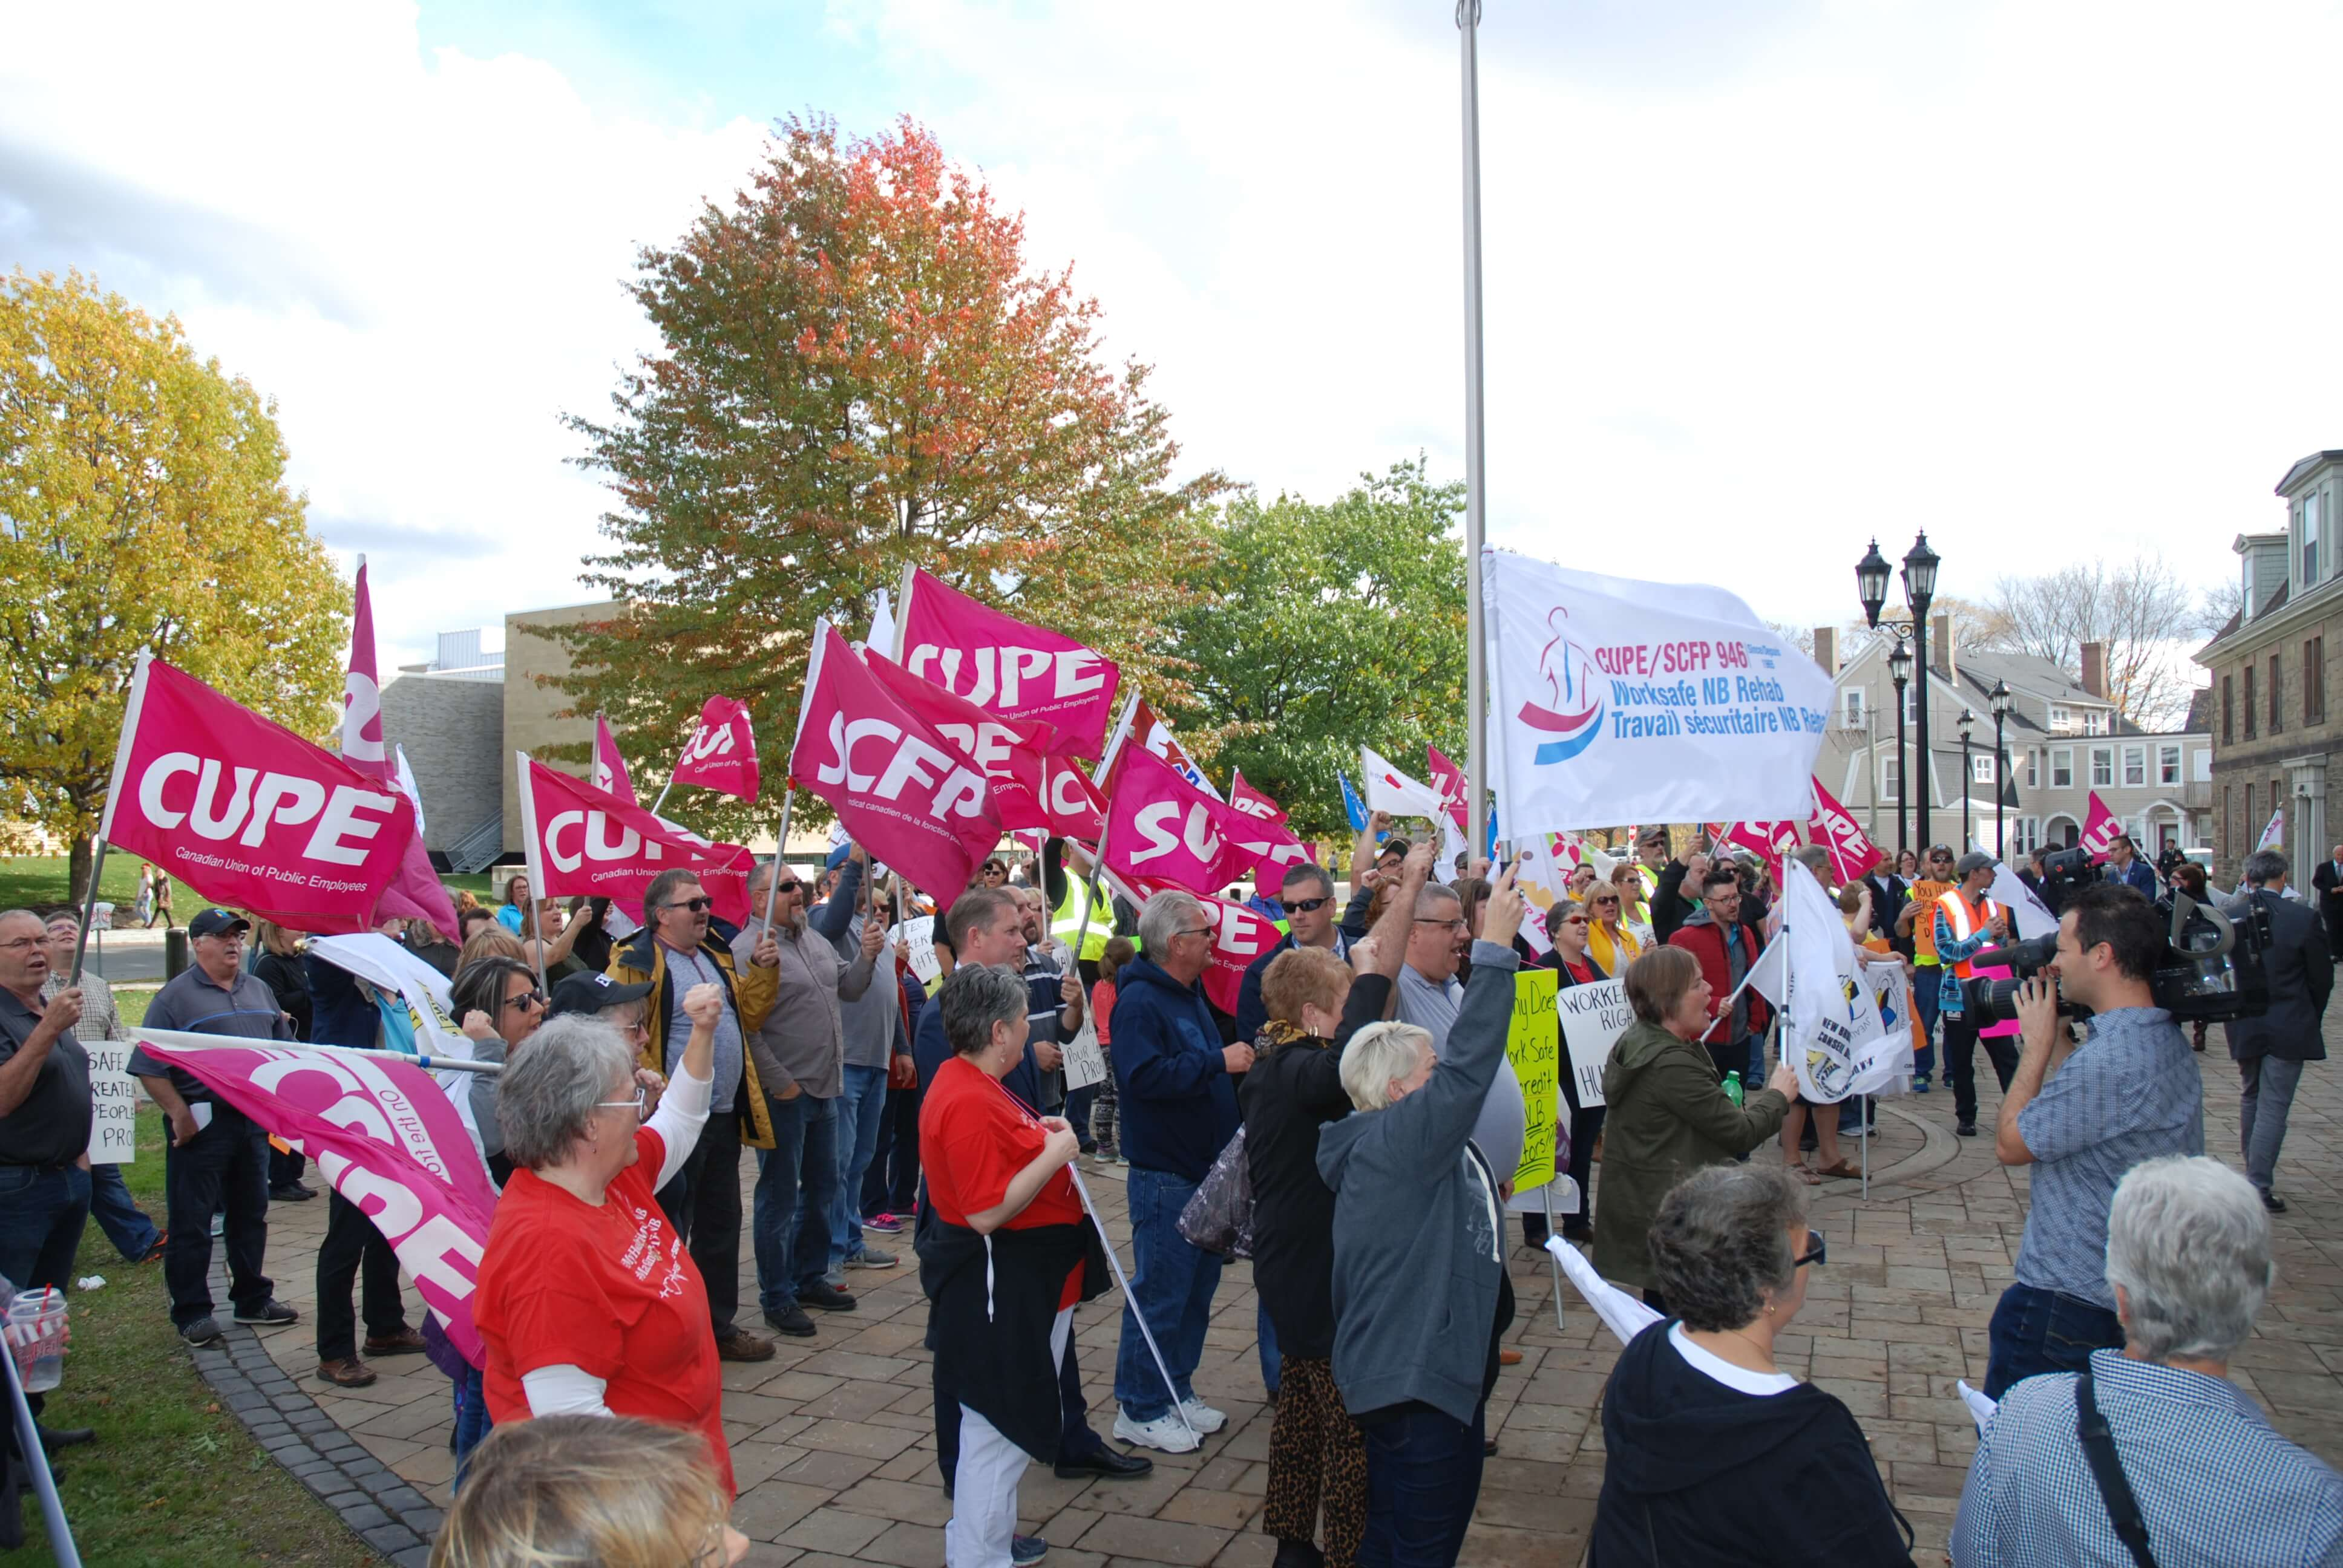 CUPE NB: Workers' compensation system is dangerously underfunded